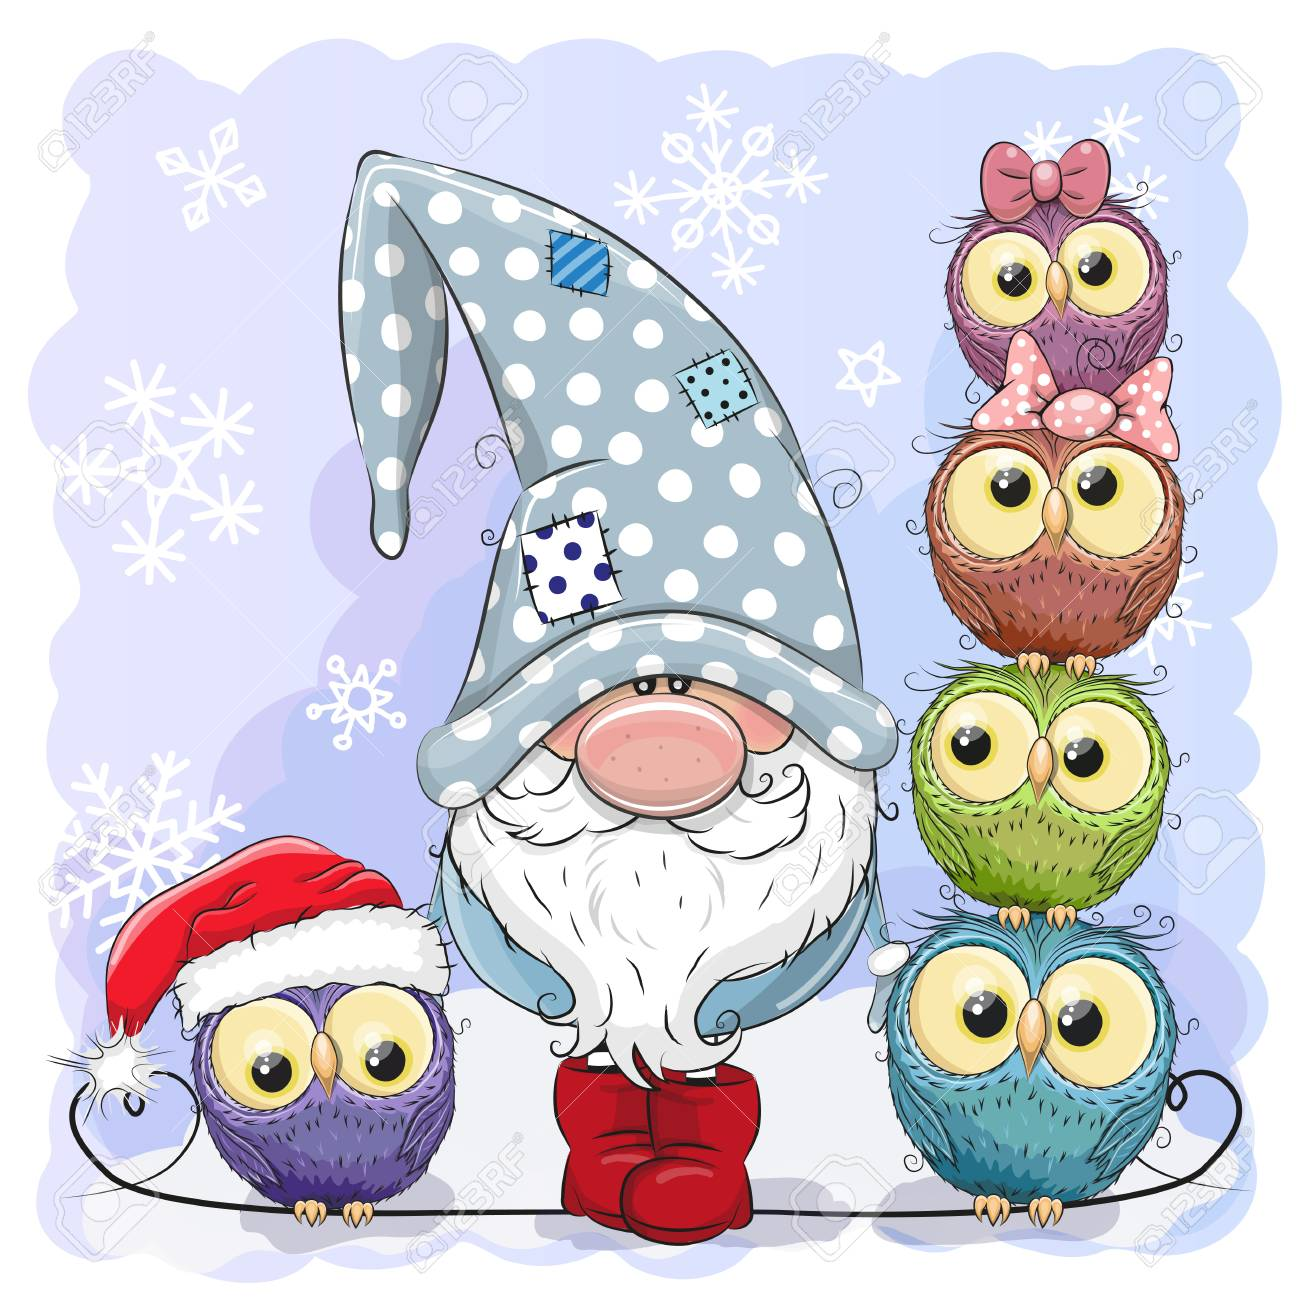 Greeting Christmas card Cute Cartoon Gnome and Owls blue background - 112673682